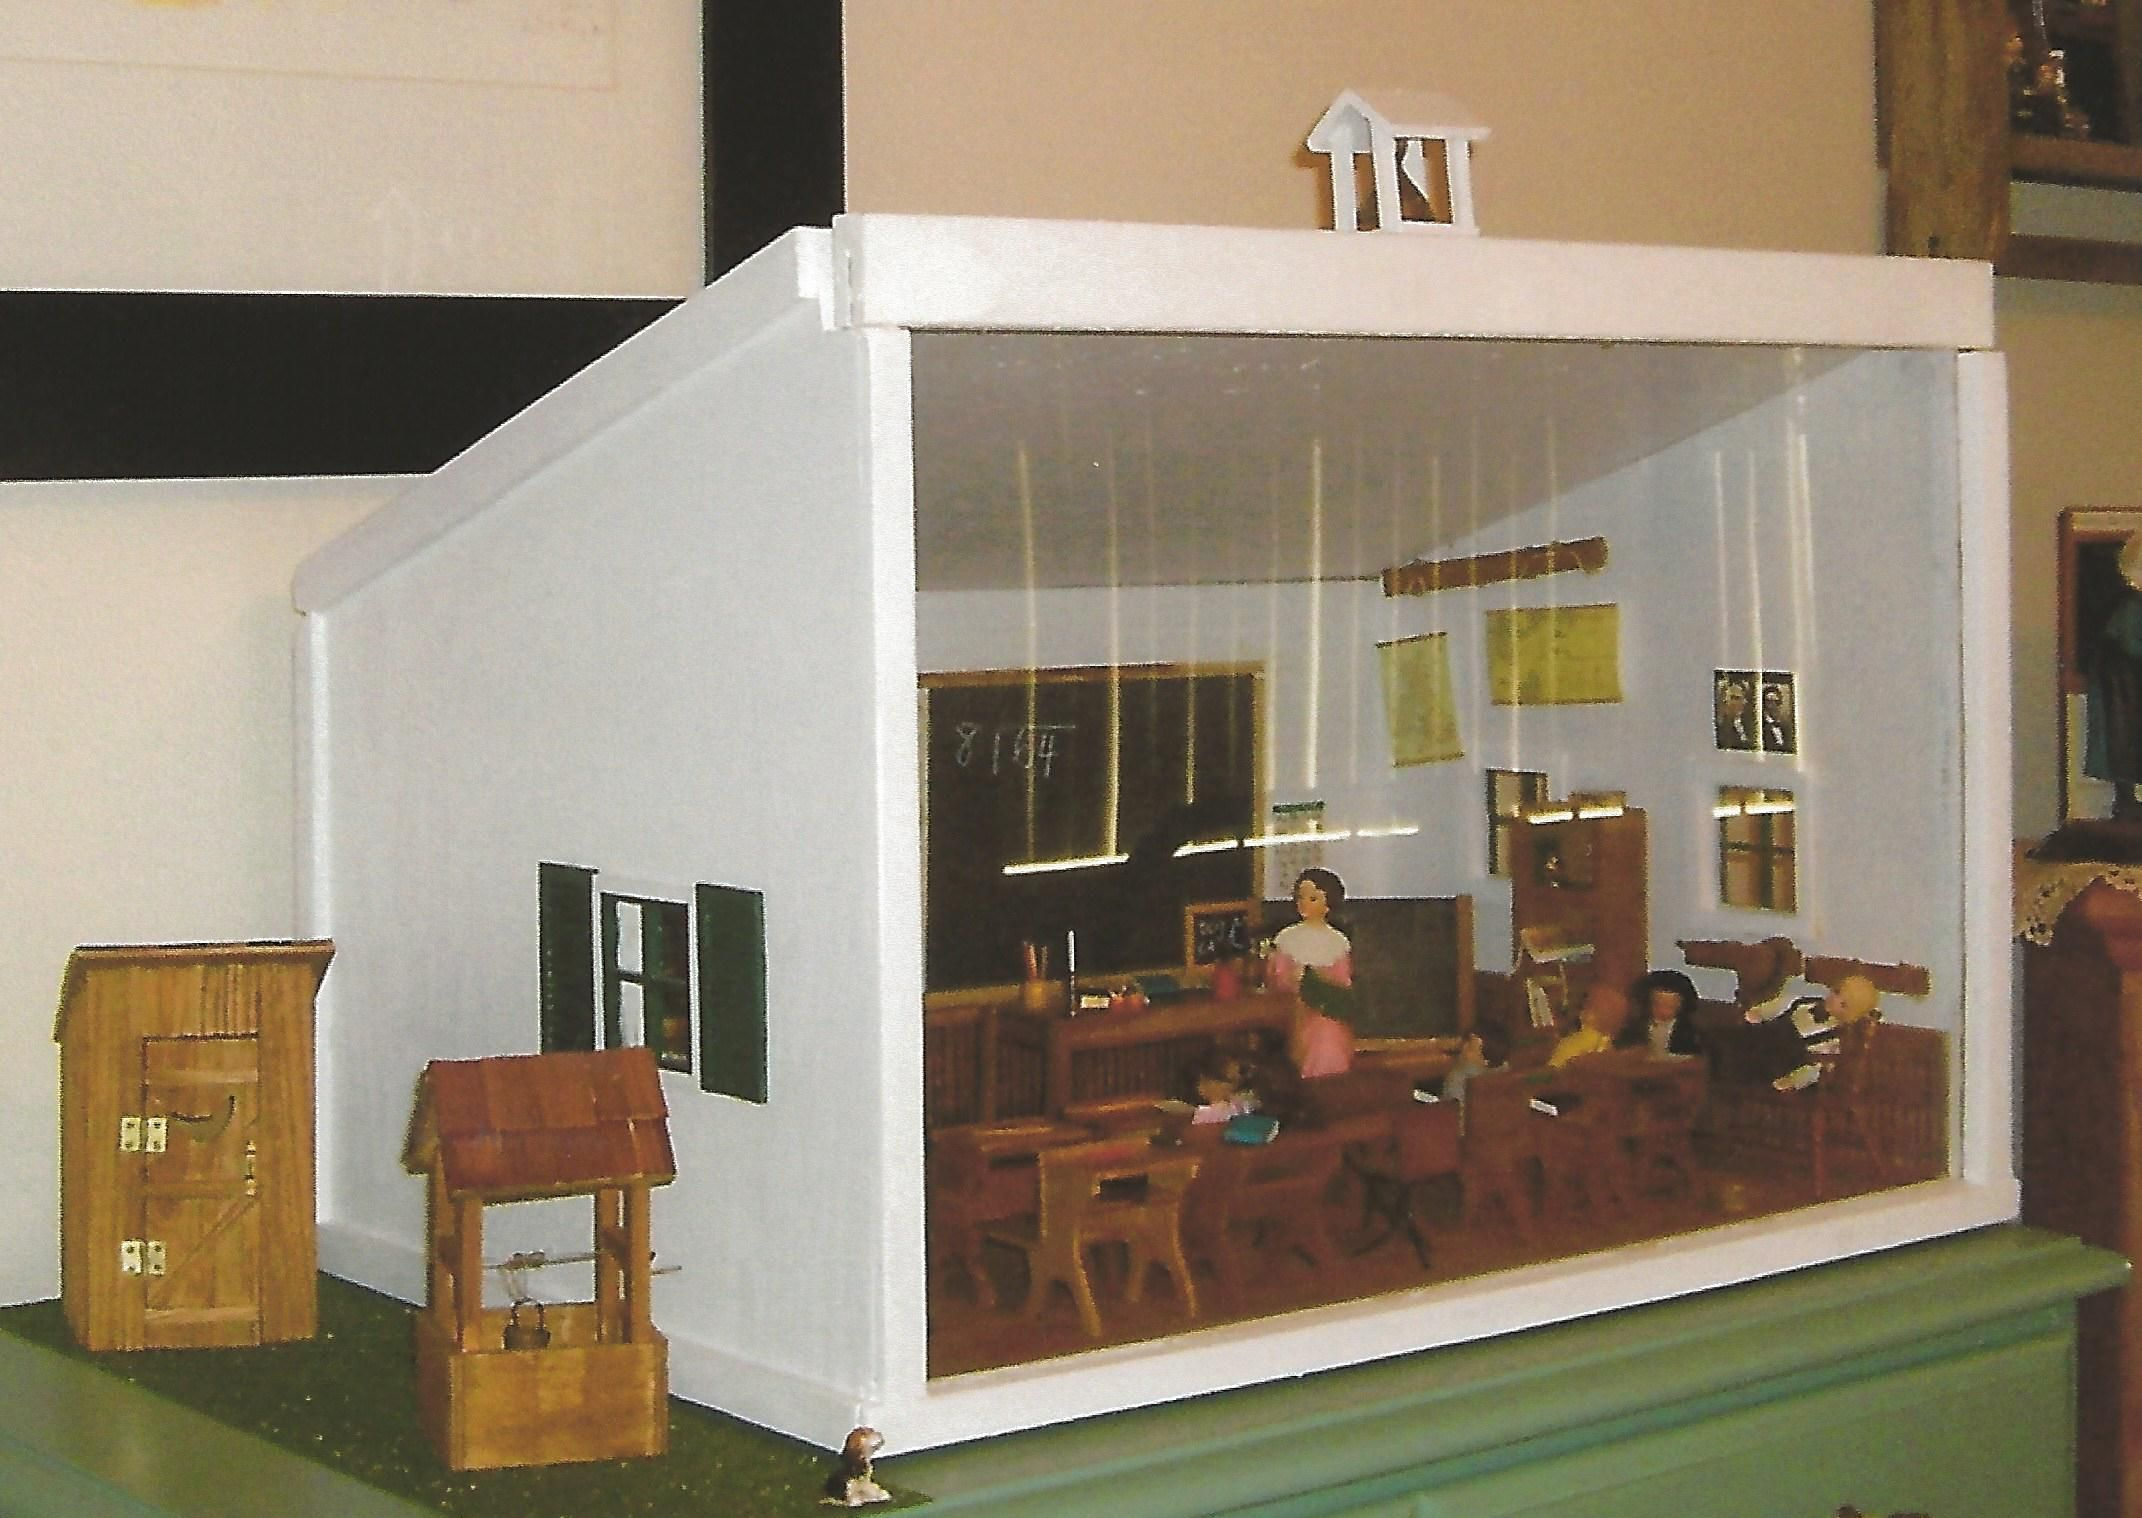 Good one room school house diorama lrzo for Building a one room house